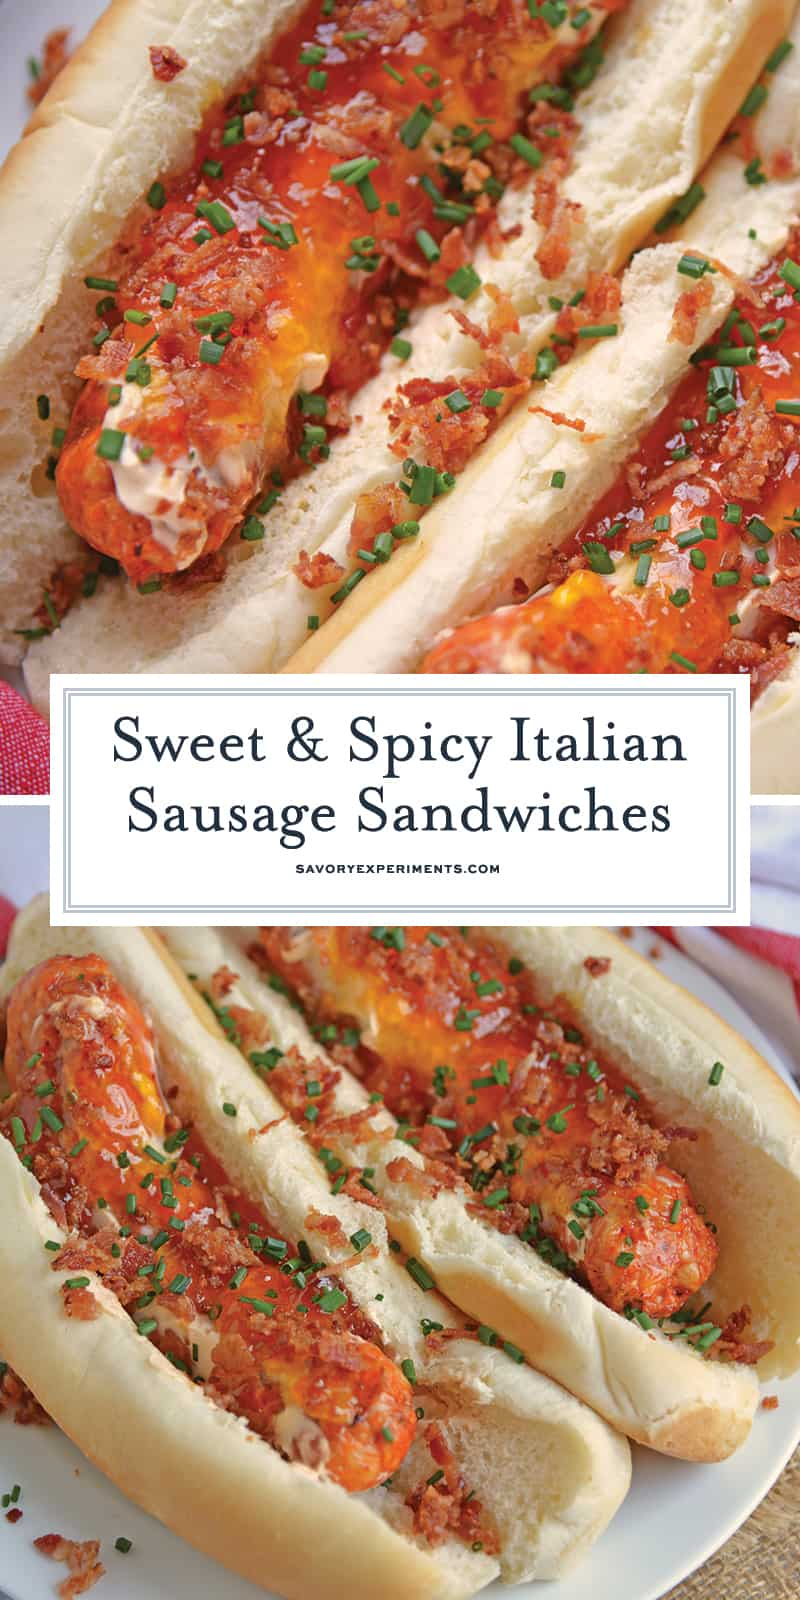 Sweet and Spicy Italian Sausage Sandwiches combine spicy Italian sausage with hot sauce spiked cream cheese with sweet apricot jam, salty bacon and chives. #sausagesandwiches www.savoryexperiments.com